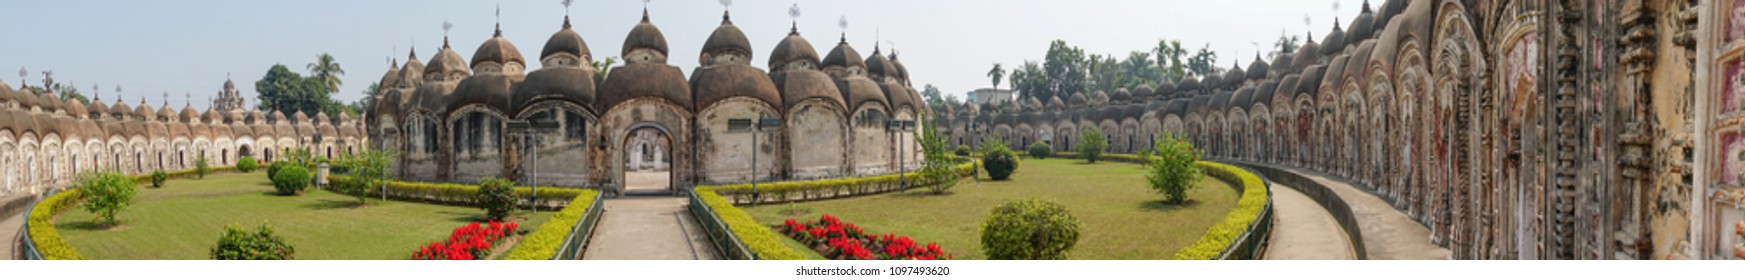 Panoramic image of 108 Shiva Temples of Kalna, Burdwan , West Bengal. A total of 108 temples of Lord Shiva (a Hindu God), are arranged in two concentric circles - an architectural wonder,